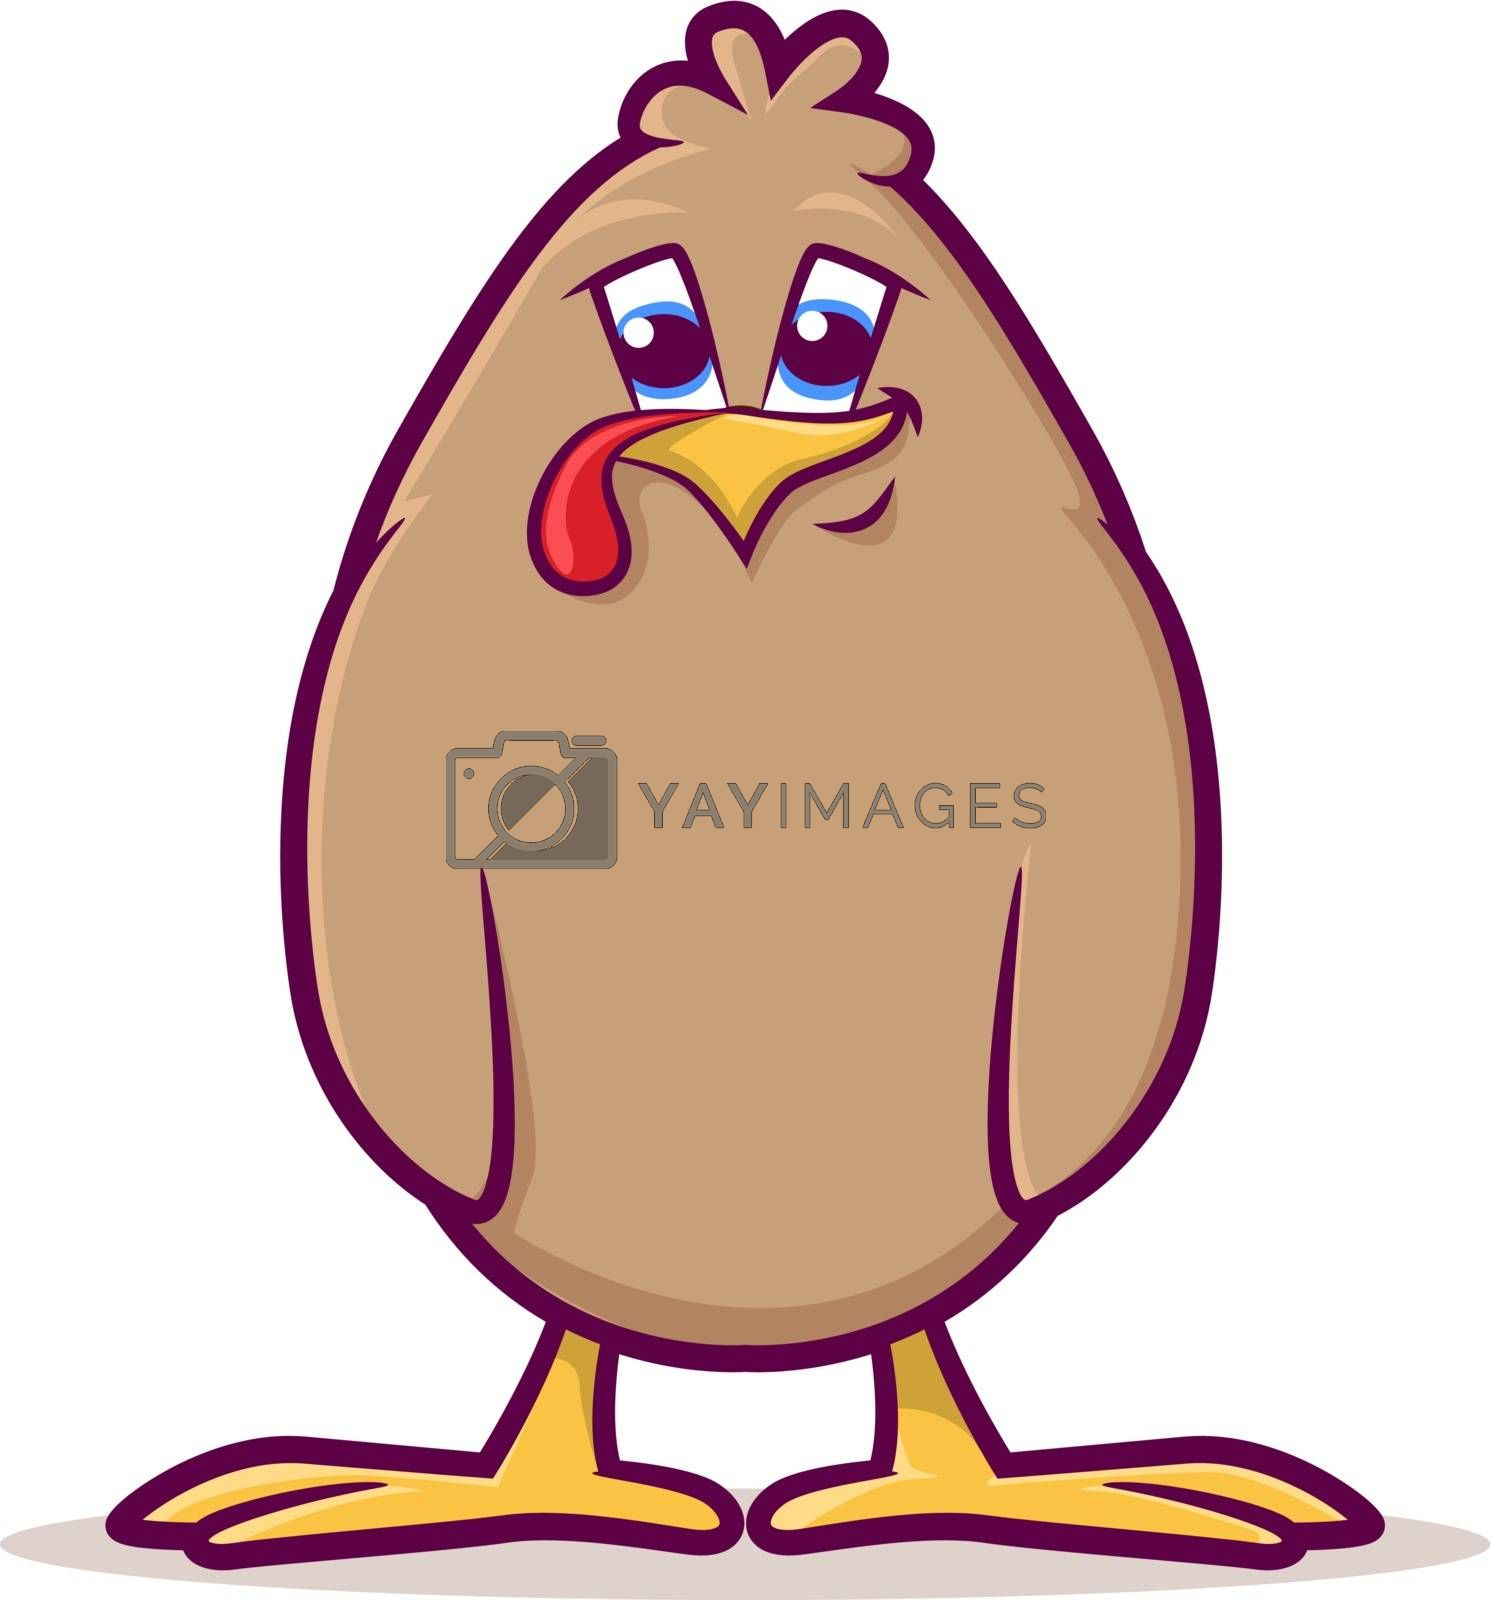 Royalty free image of Baby Fowl Cartoon by graphicgeoff